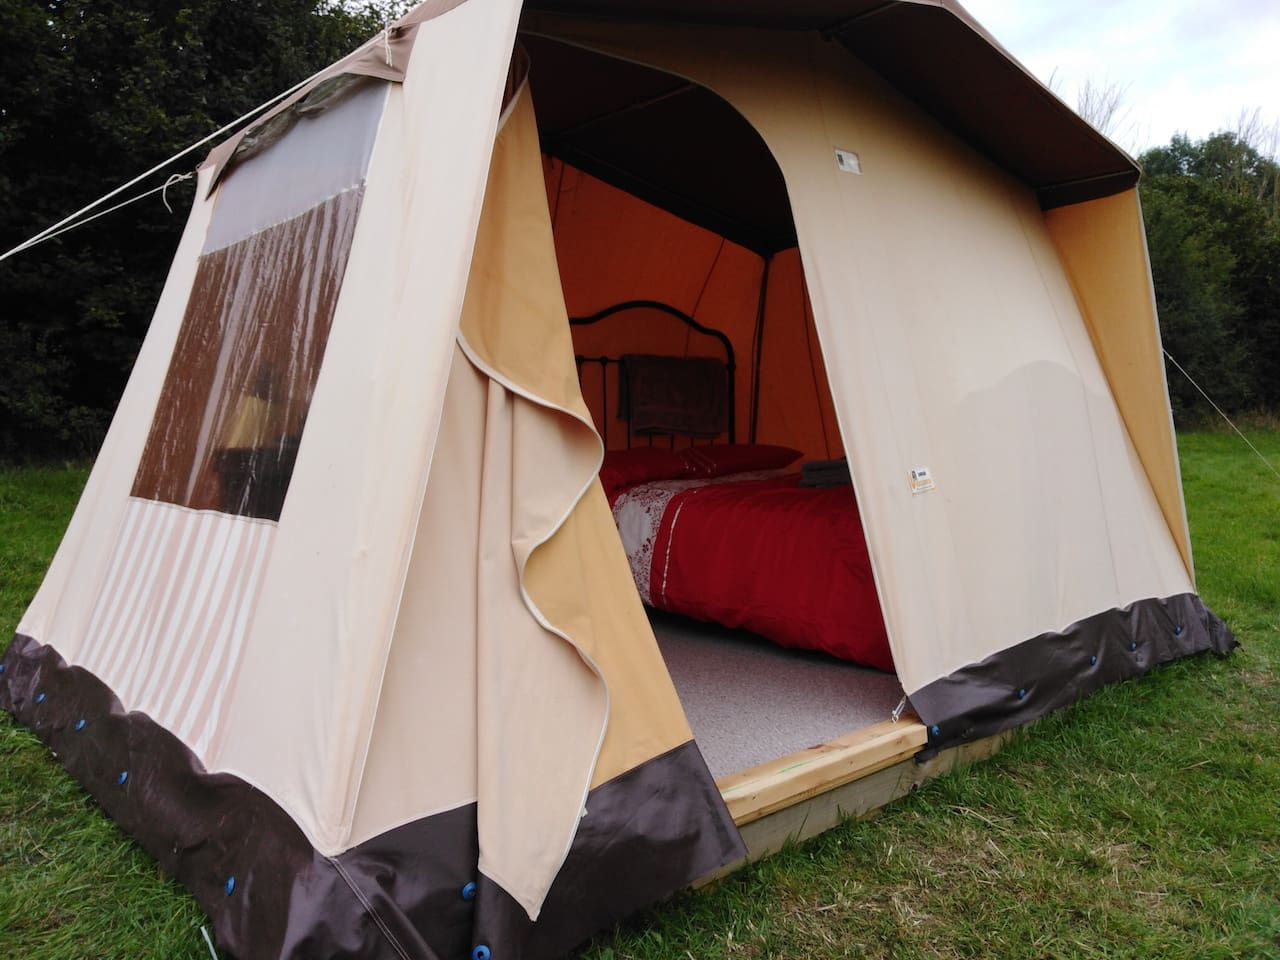 1980's Hungarian snug tent for a sumptuous stay under the canvas